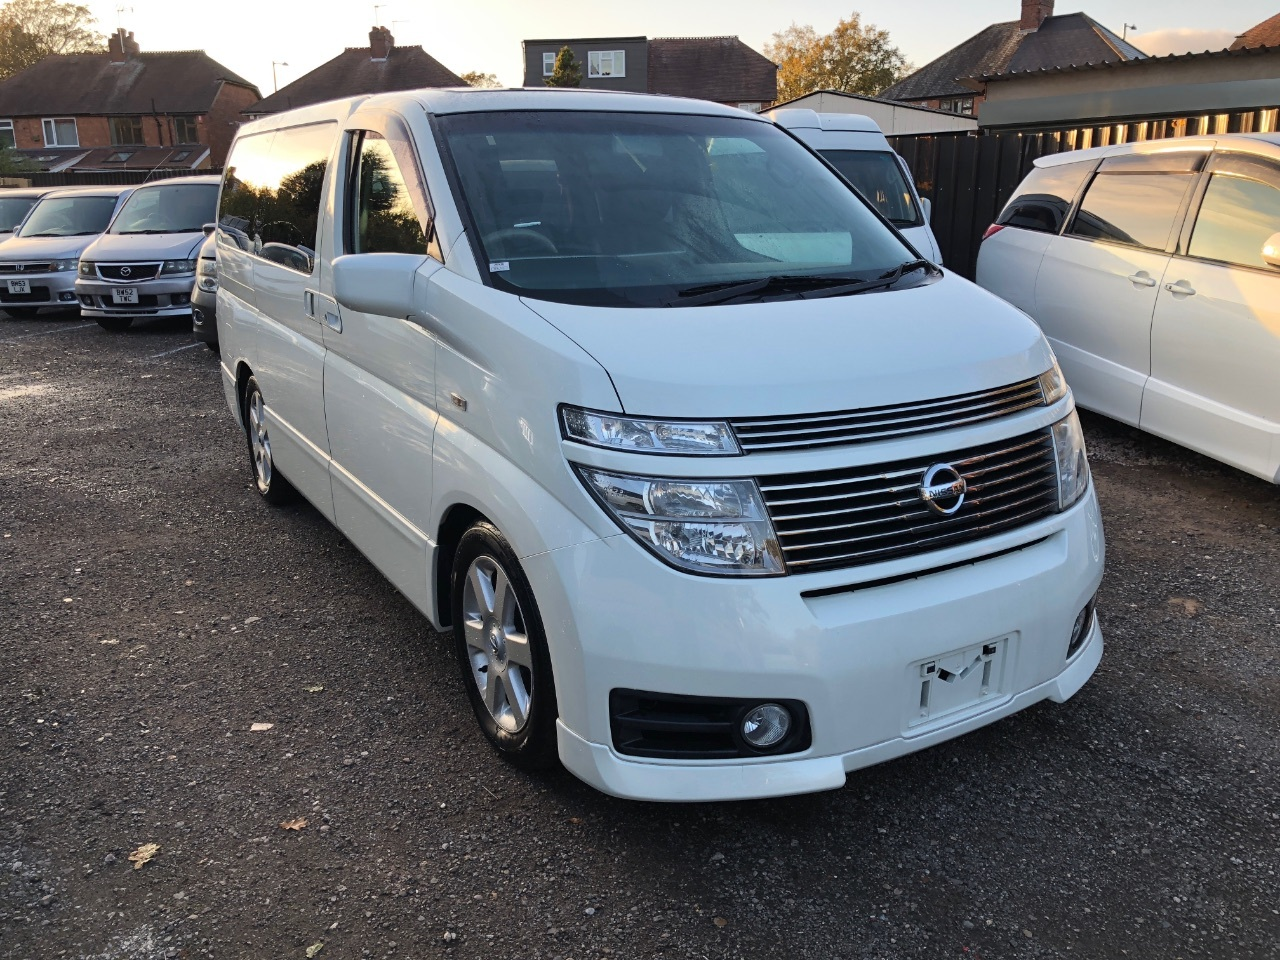 Nissan Elgrand 3.5 v6 highway star ⭐️ auto mpv 8seater fresh import 4wd Four Wheel Drive Petrol White